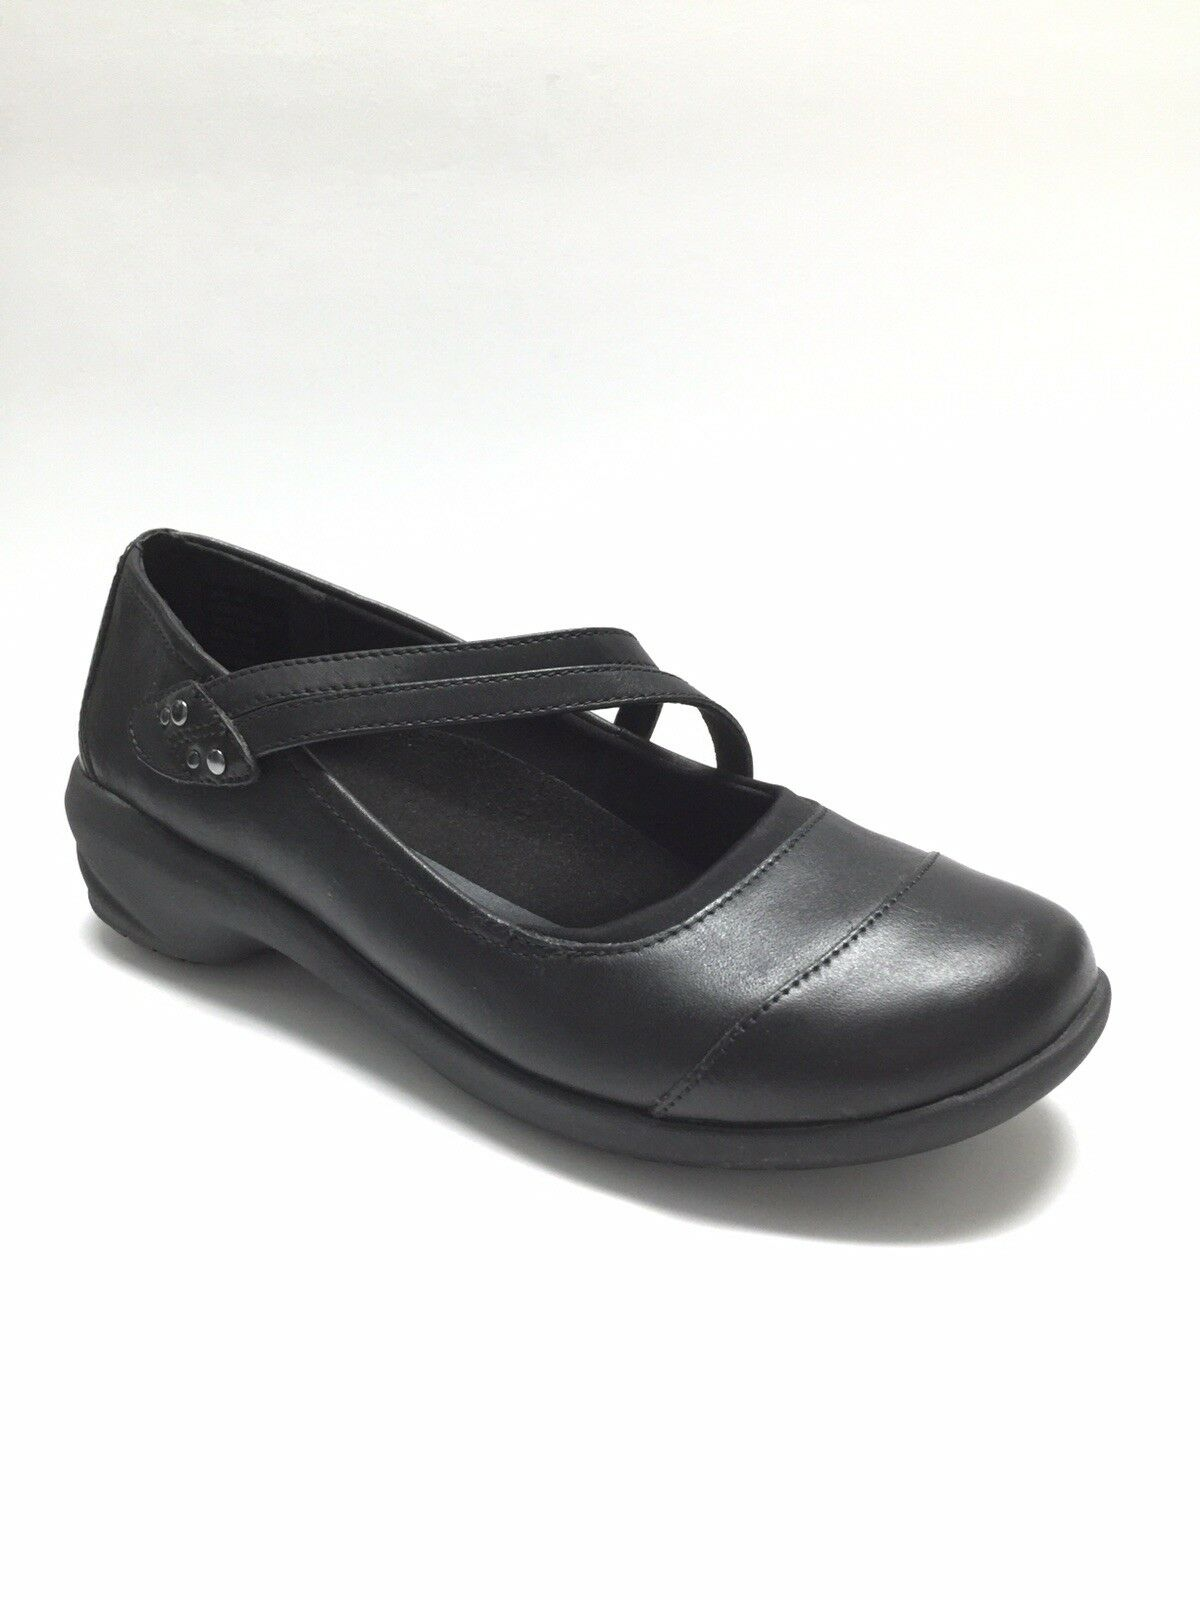 Abeo Women's Mary Janes Straps Straps Straps Slip On Loafers shoes Smartsystem Black Size 9 d7aea7